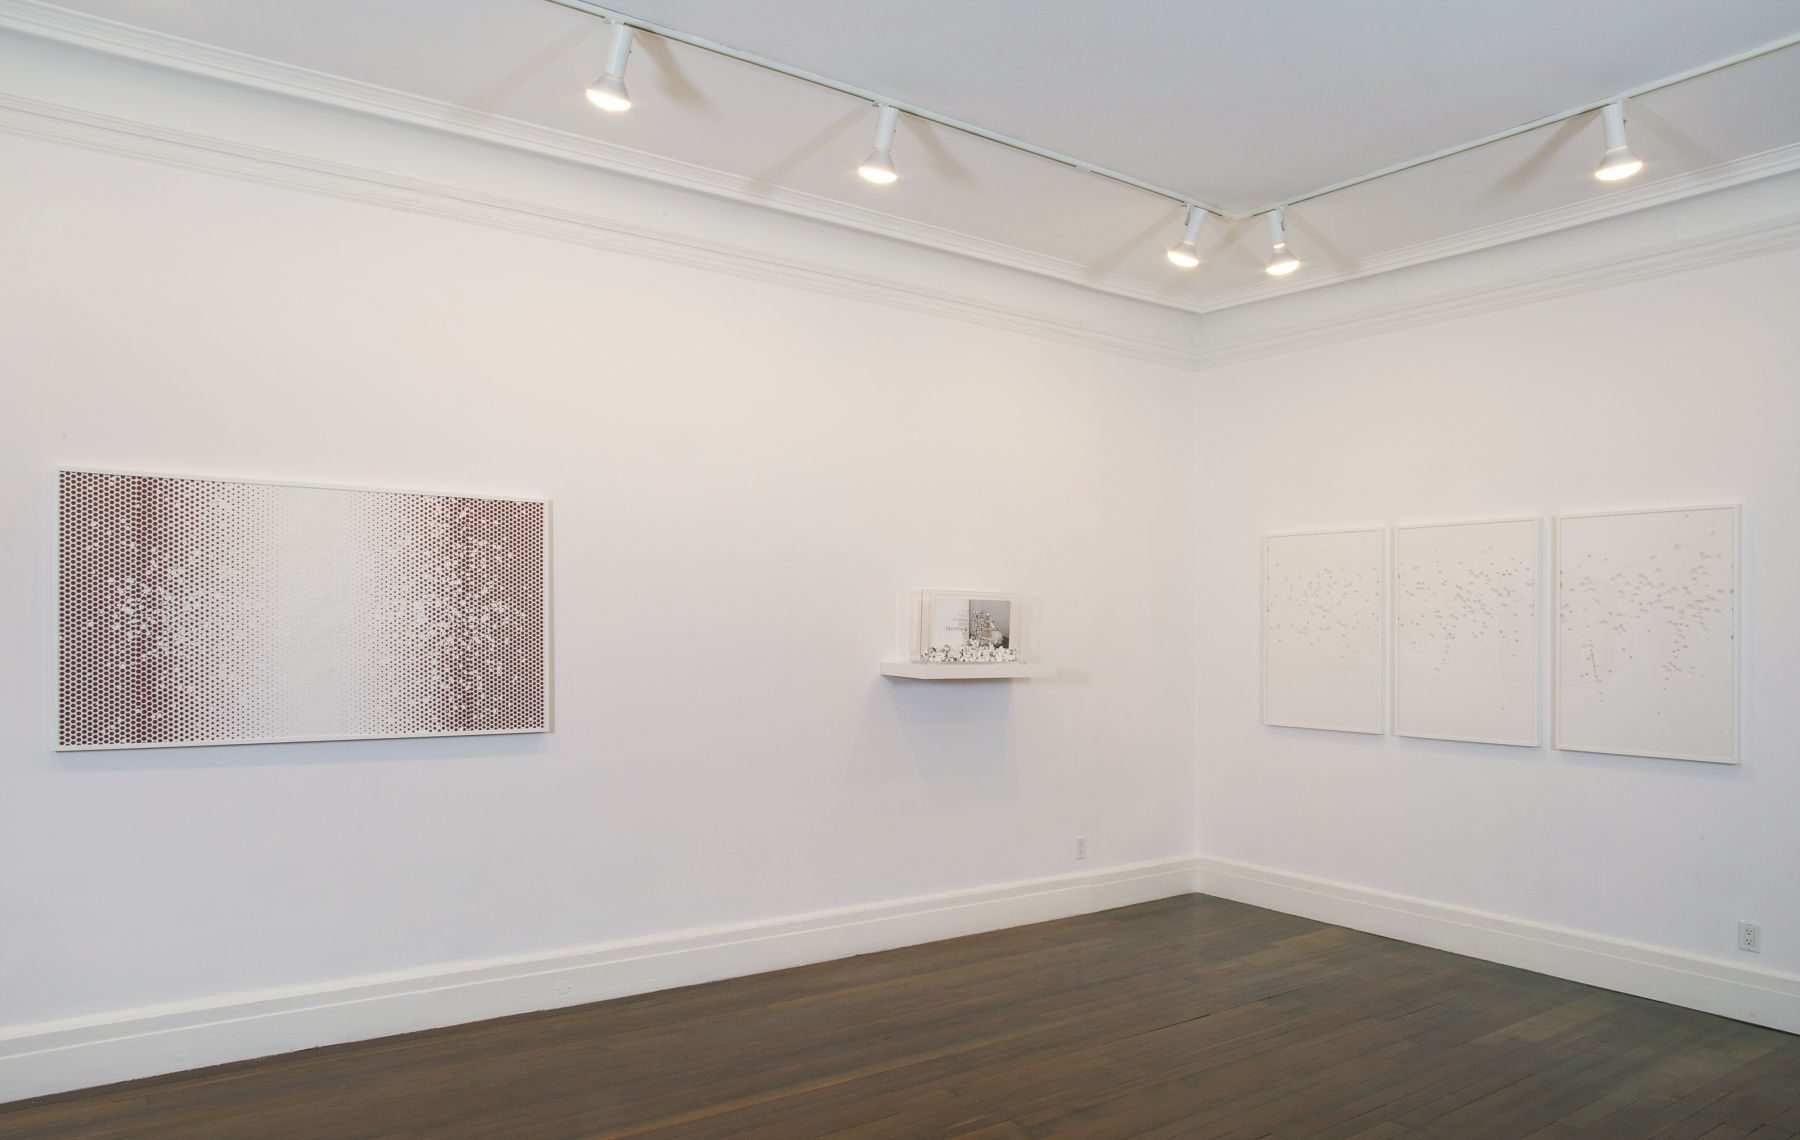 Installation view, Noriko Ambe: Cutting – Without an Outline, 18 EAST 77